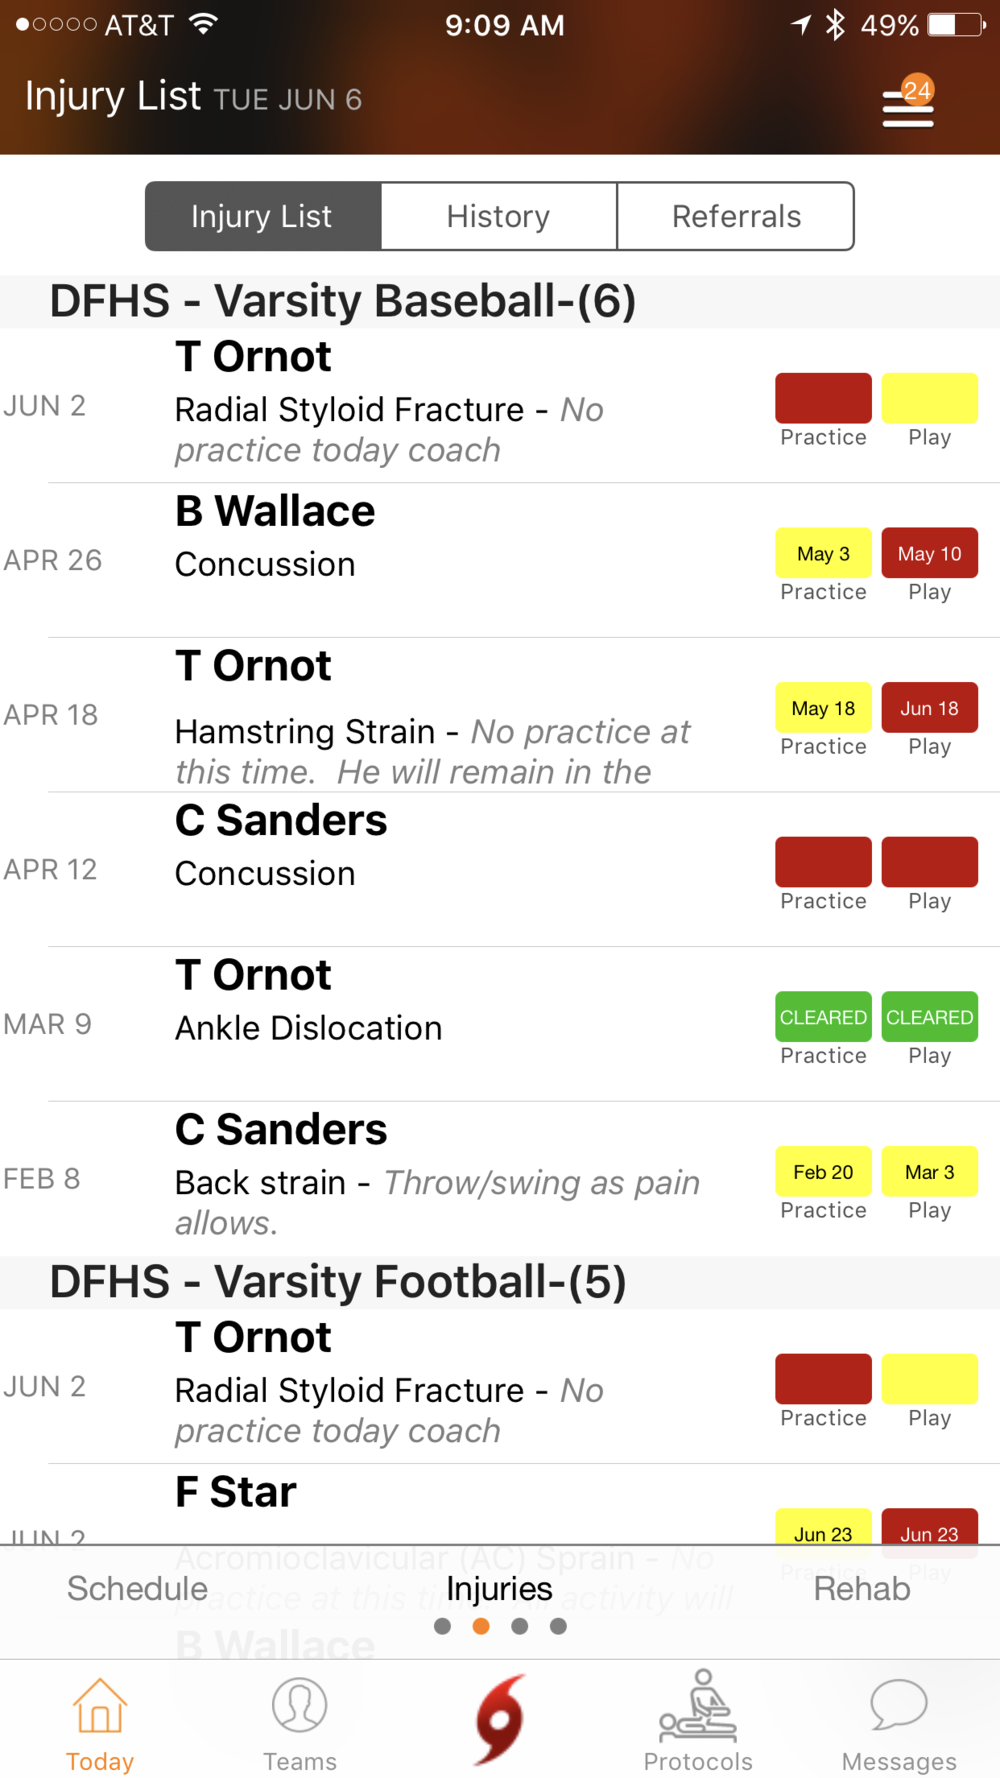 injury-list Screenshot.png